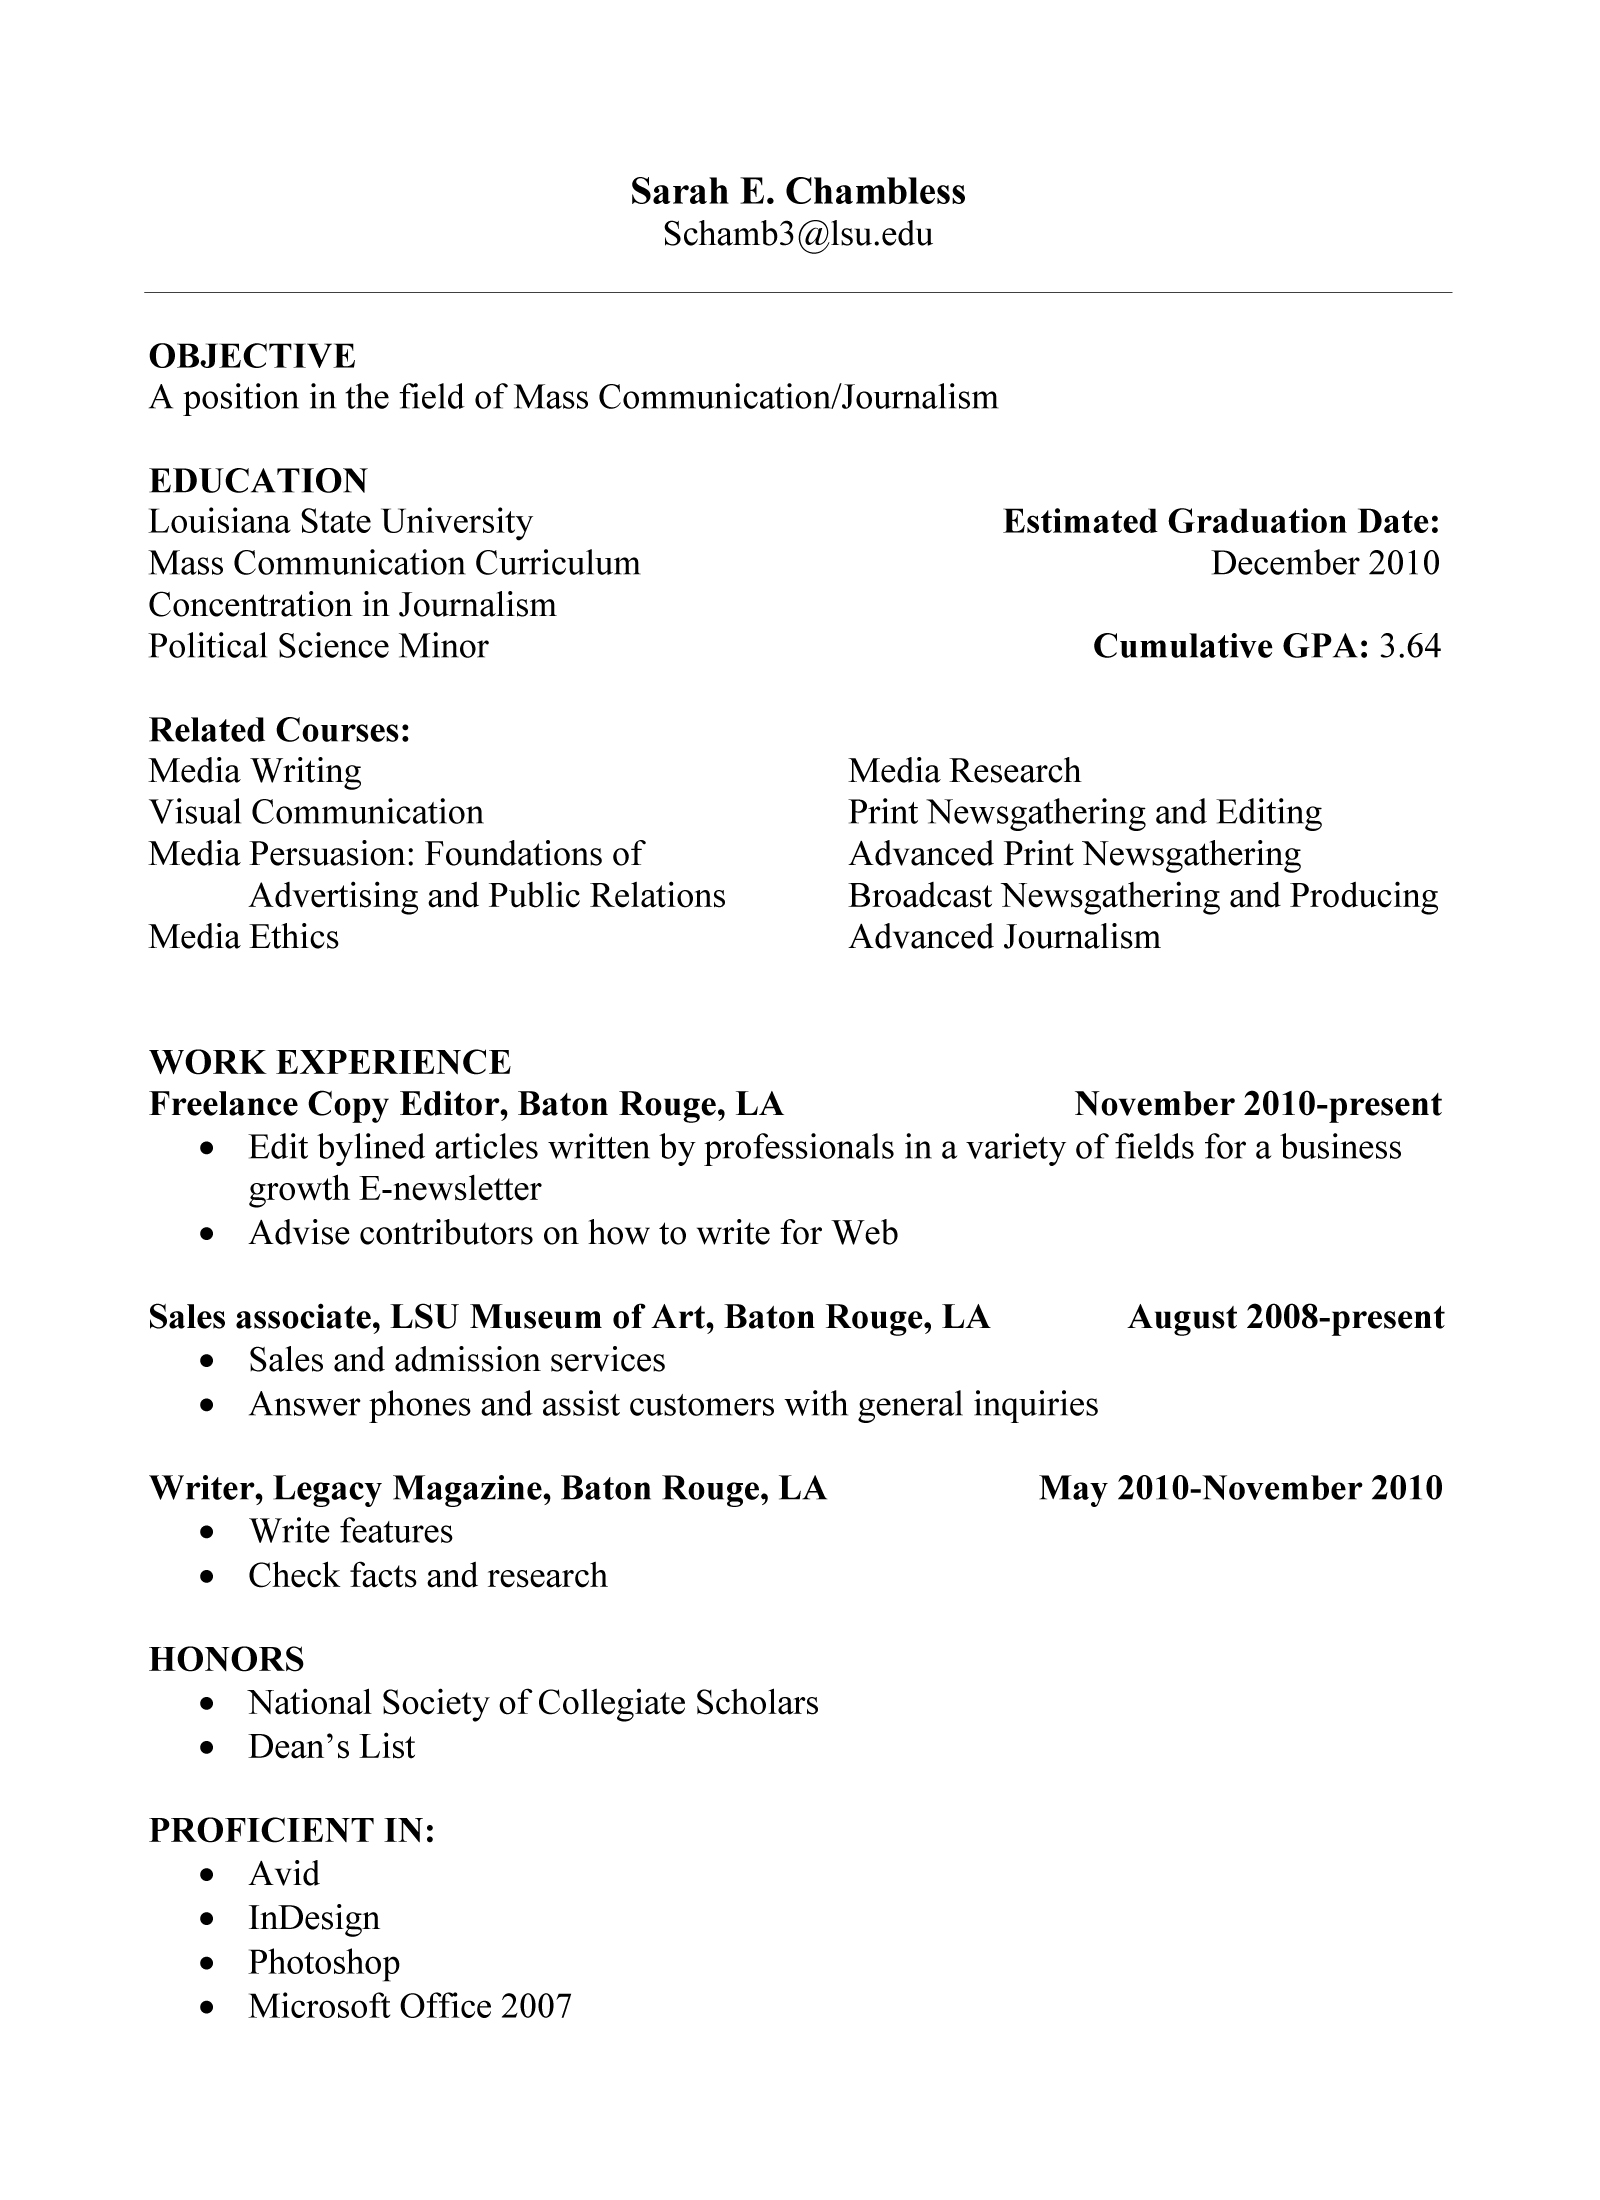 Basic College Student Resume Search Results The Works 0nIZ8g6Z